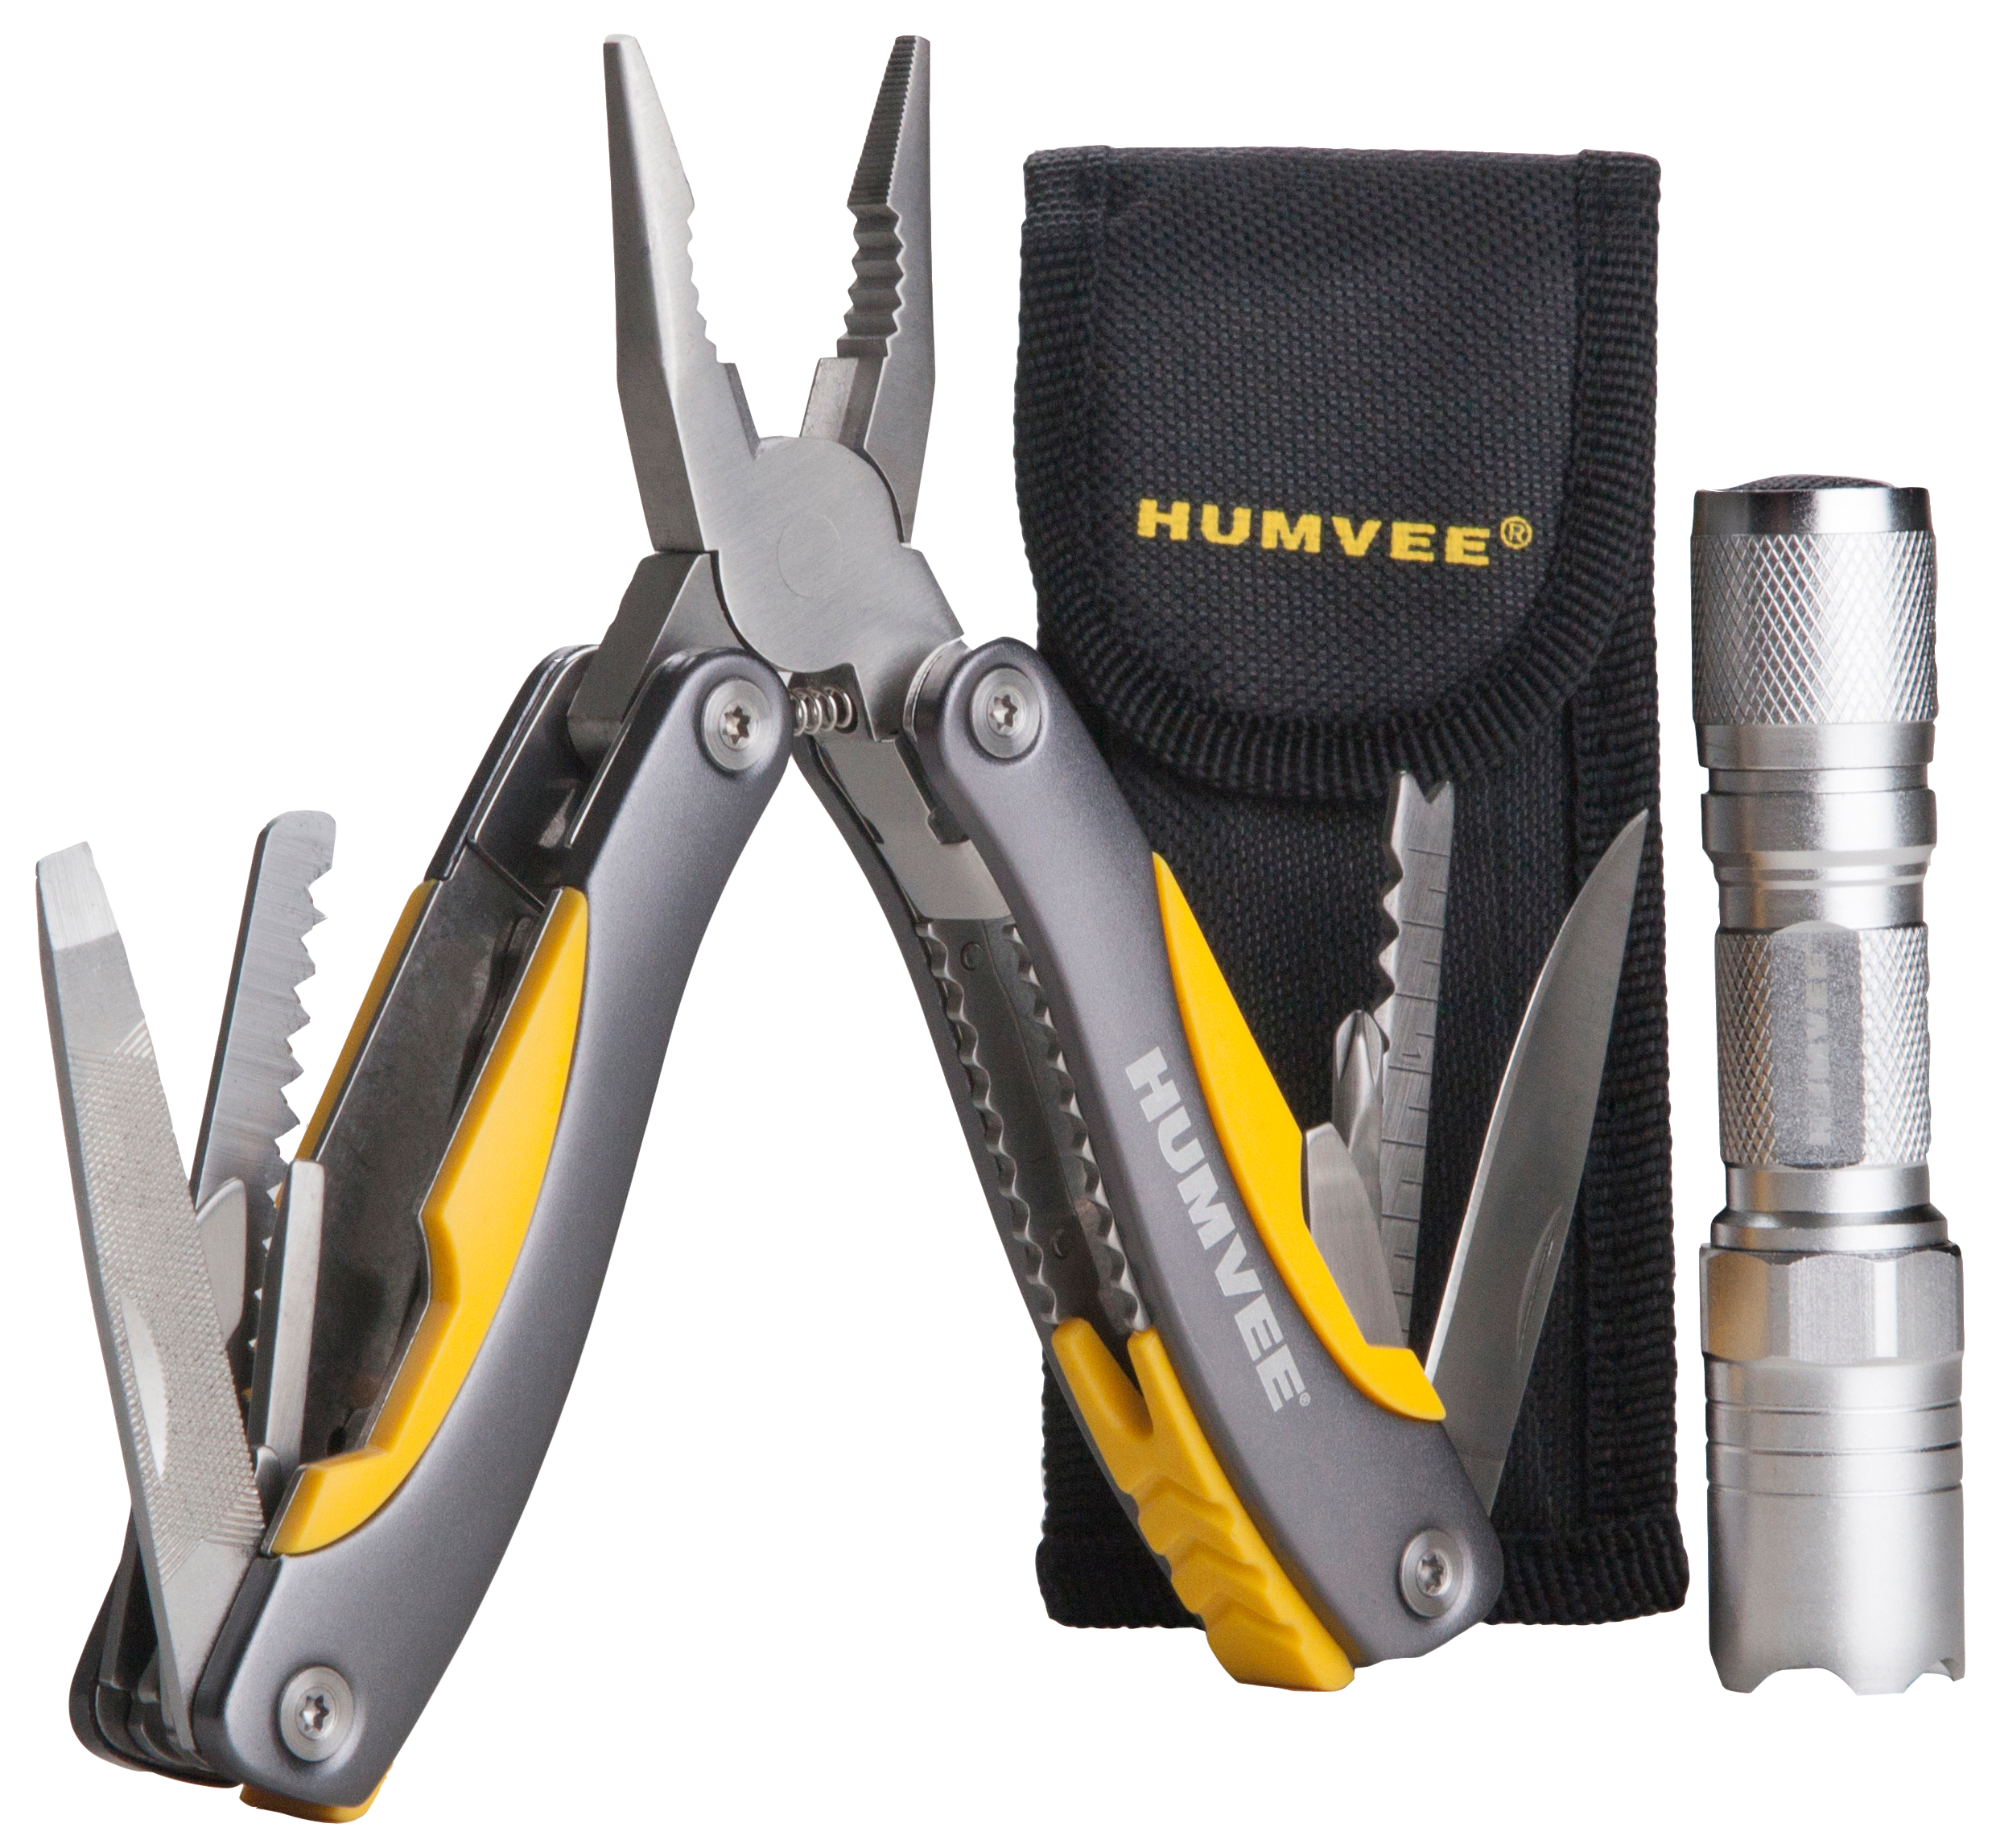 Humvee Accessories HMVCP10 Multi Pliers LED Combo Multi-Purpose Tool